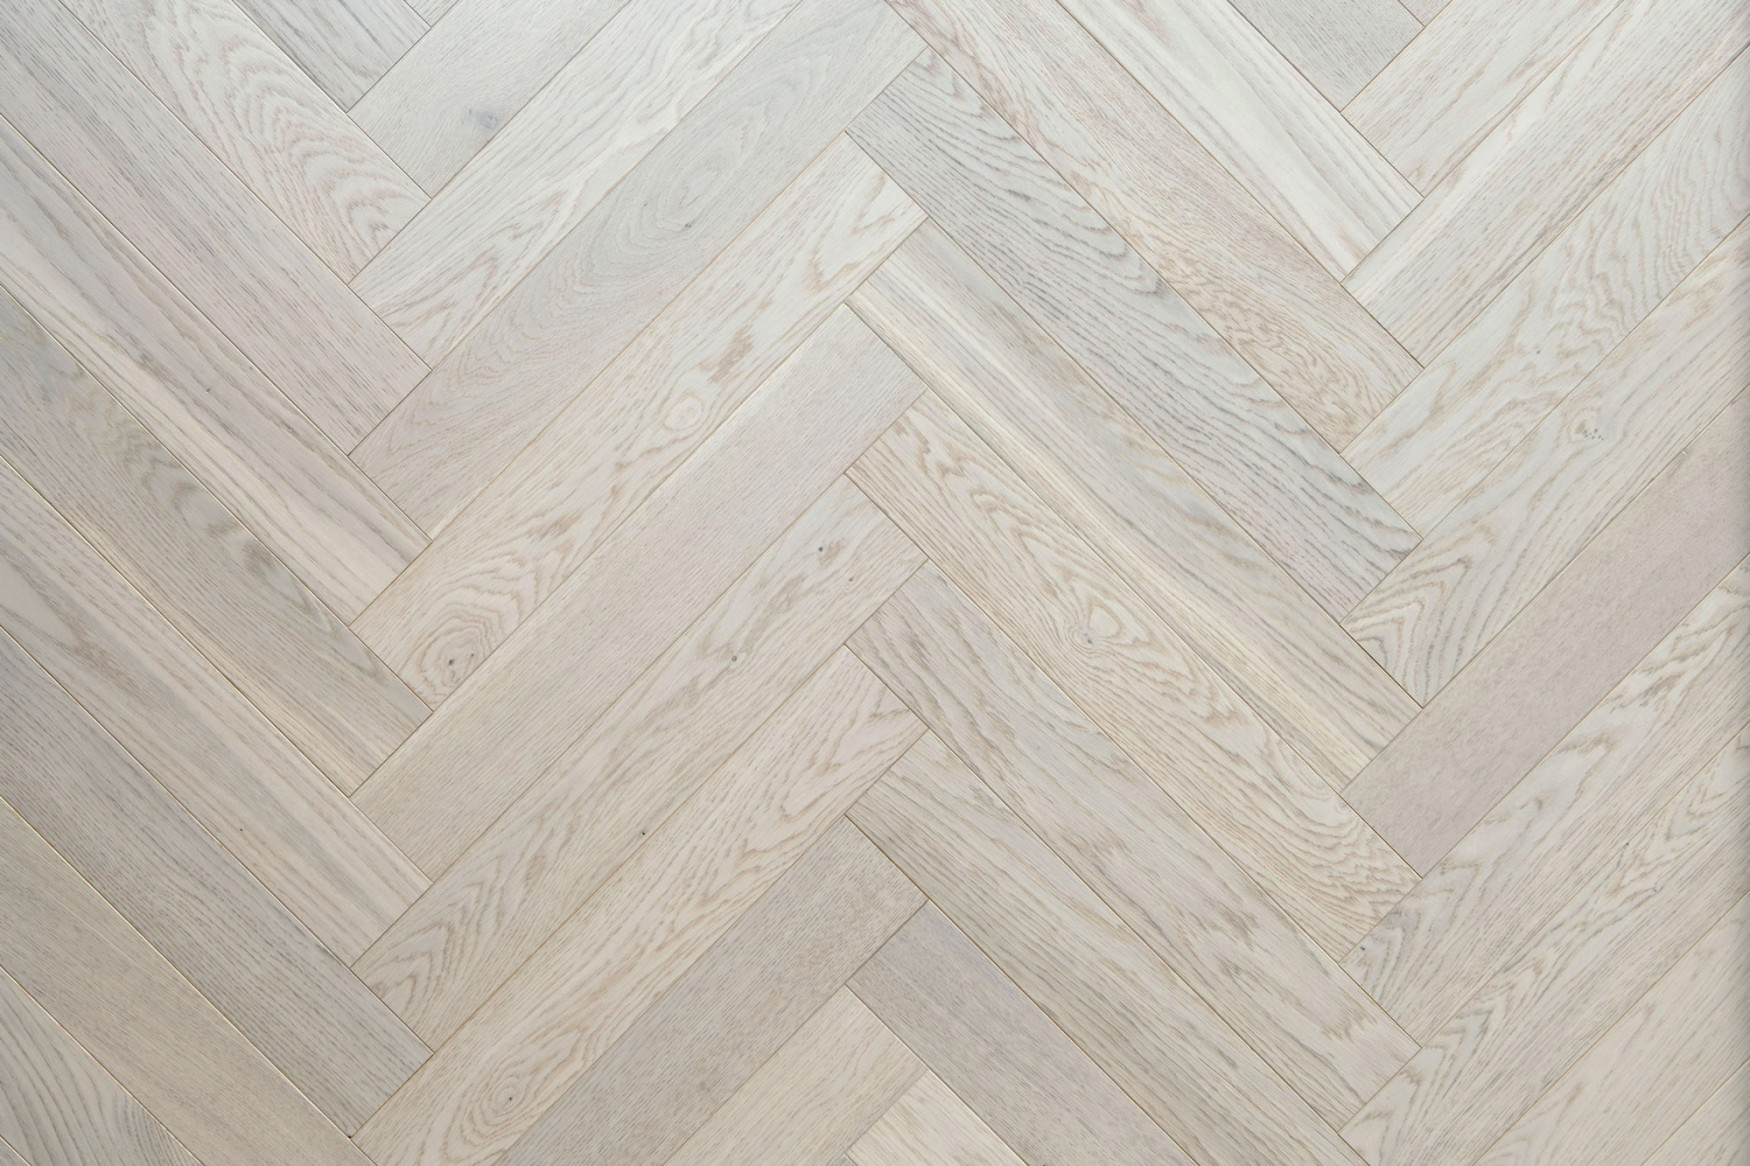 element7-warm-white-oak-herringbone-2